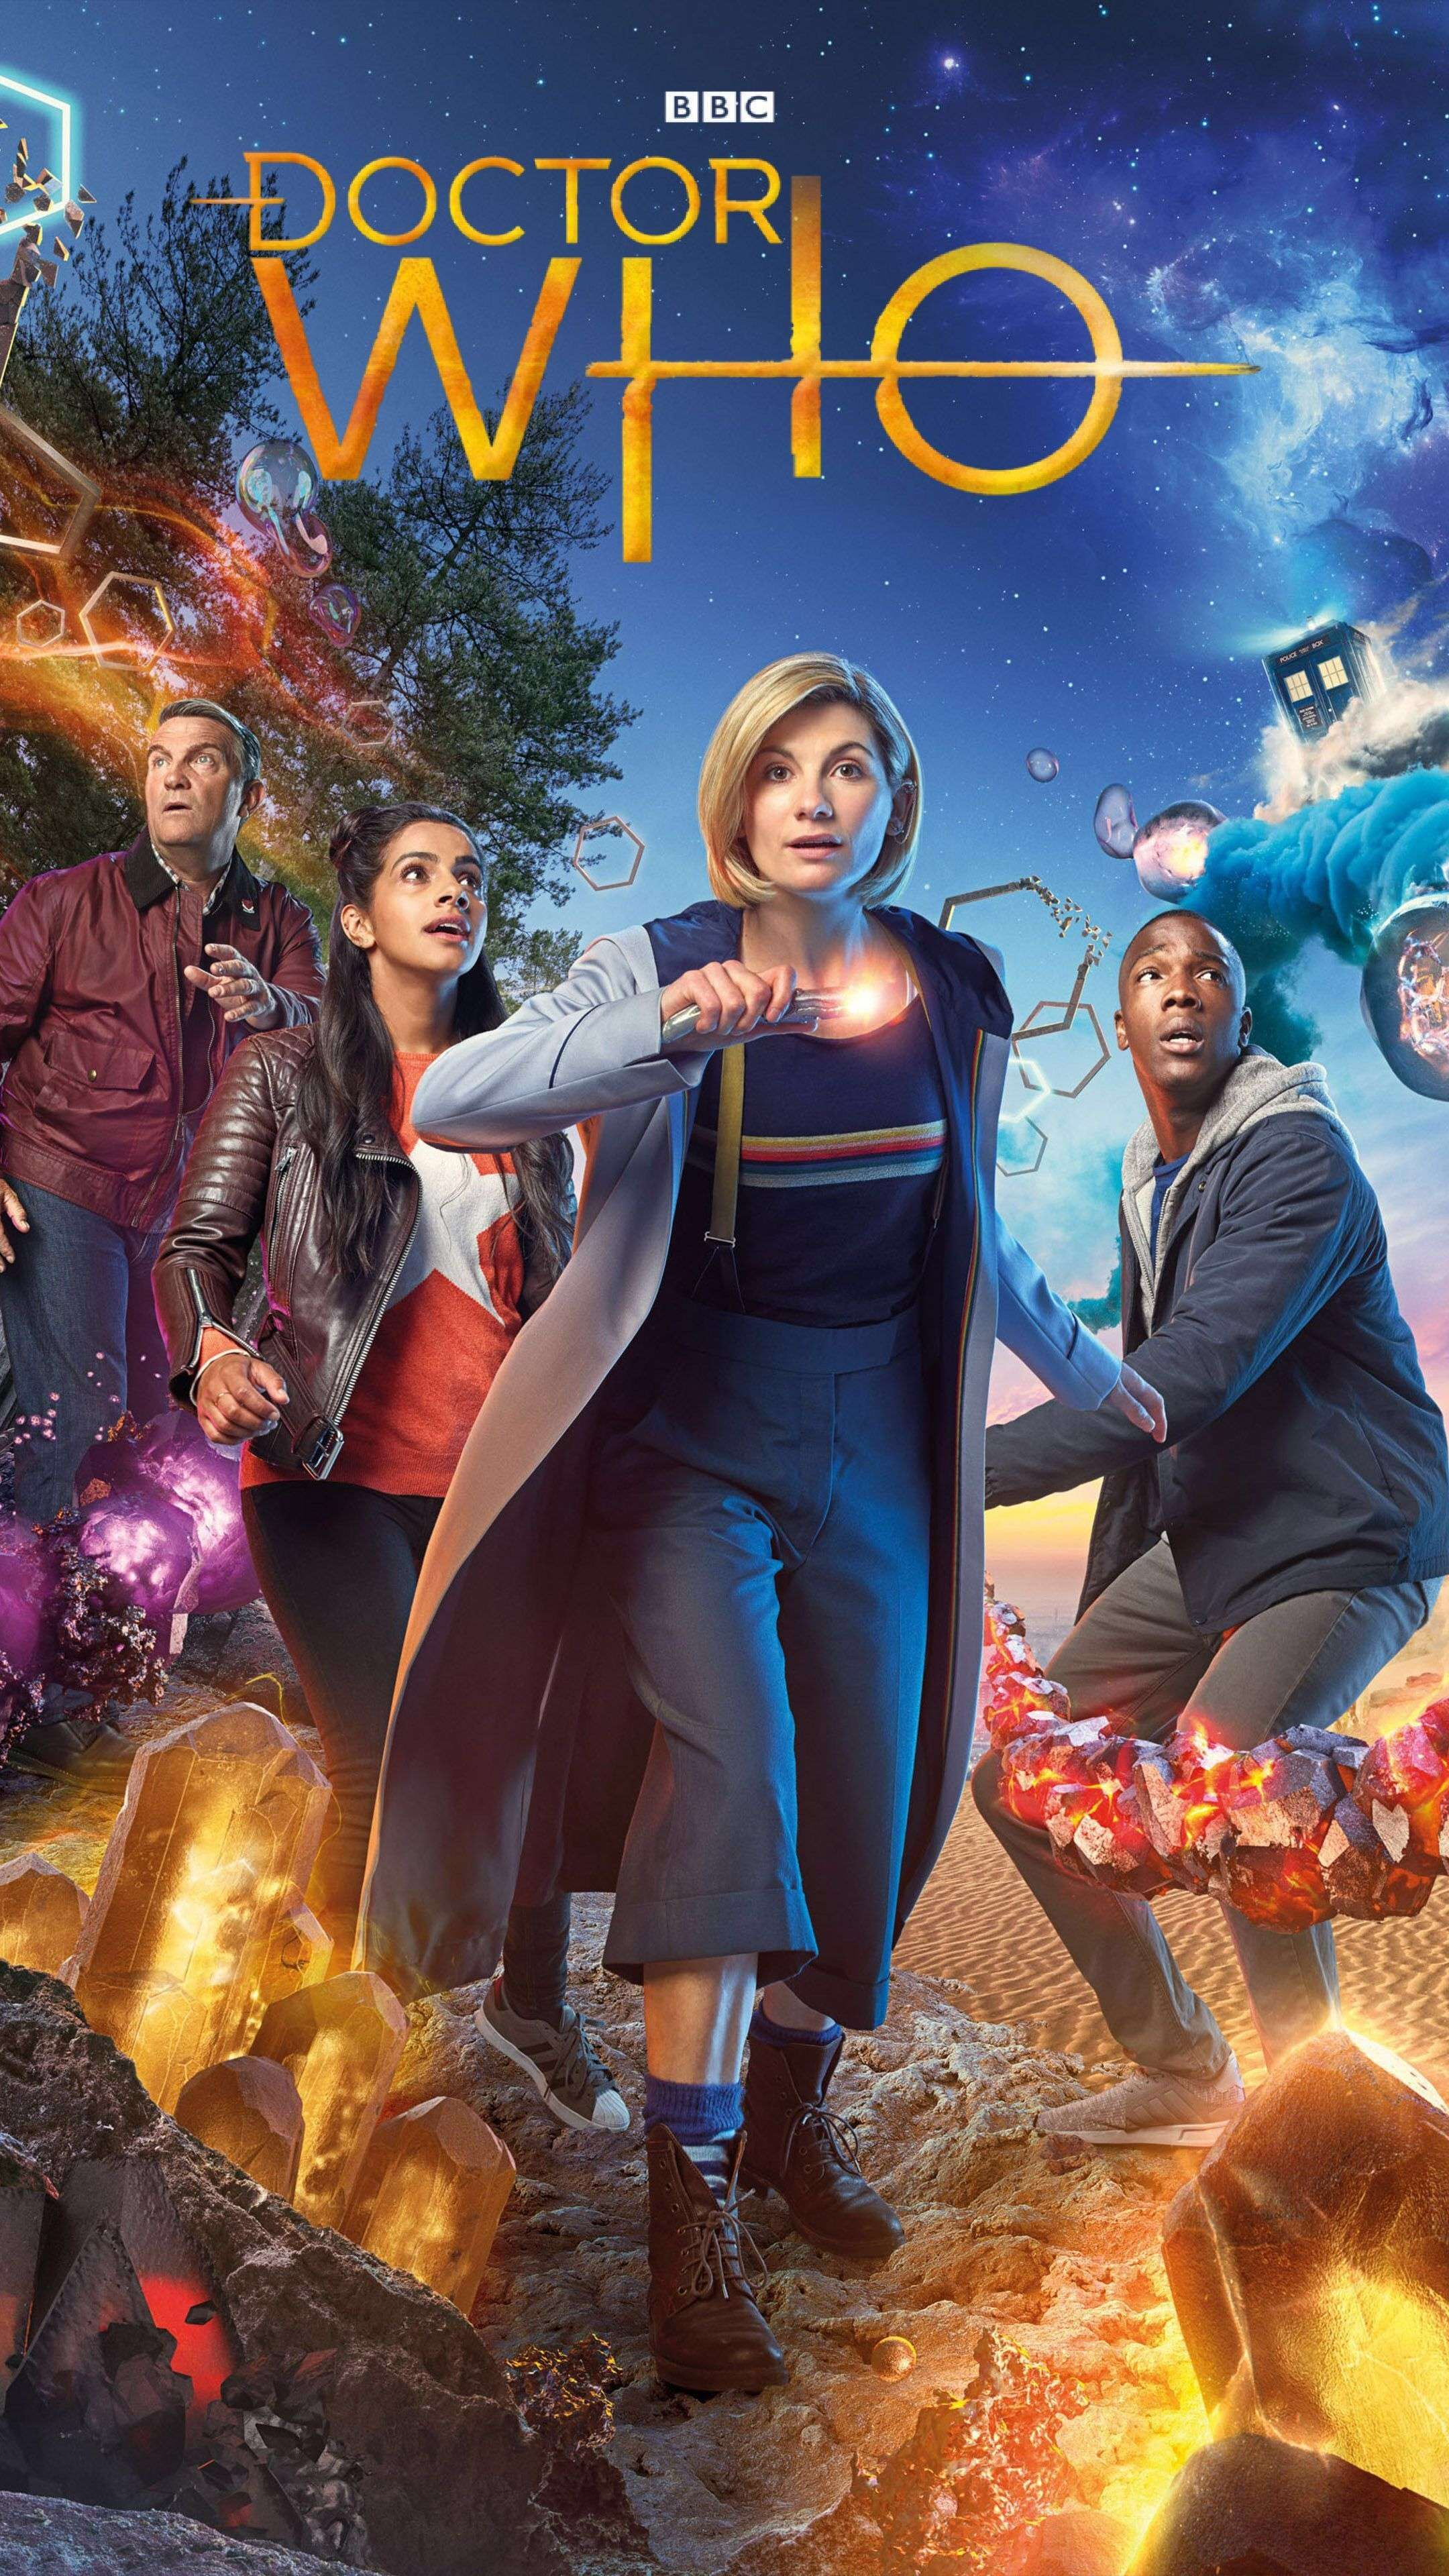 Watch Doctor Who Christmas Special 2019.Pin By Moviezu On Europ Movie In 2019 Doctor Who Season 11